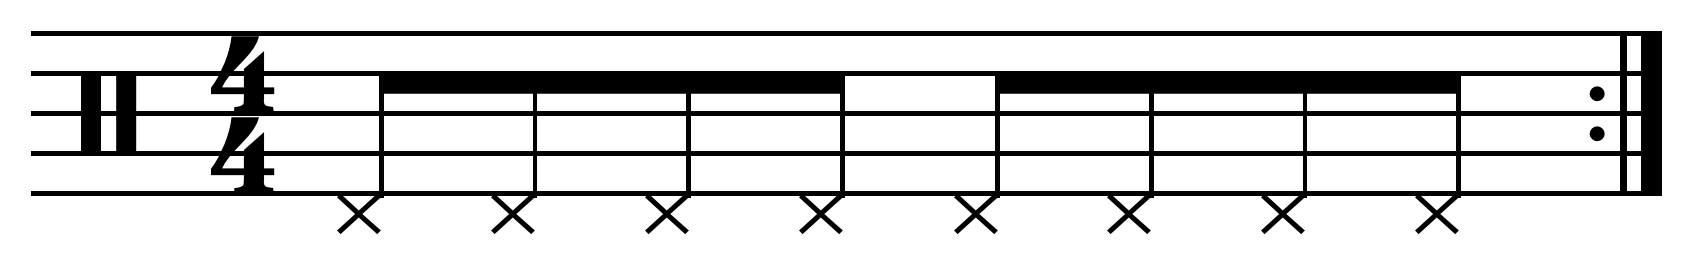 musical concept or technique, which is considered too simple to be eligible for copyright protection, or which consists only of technique, with no original